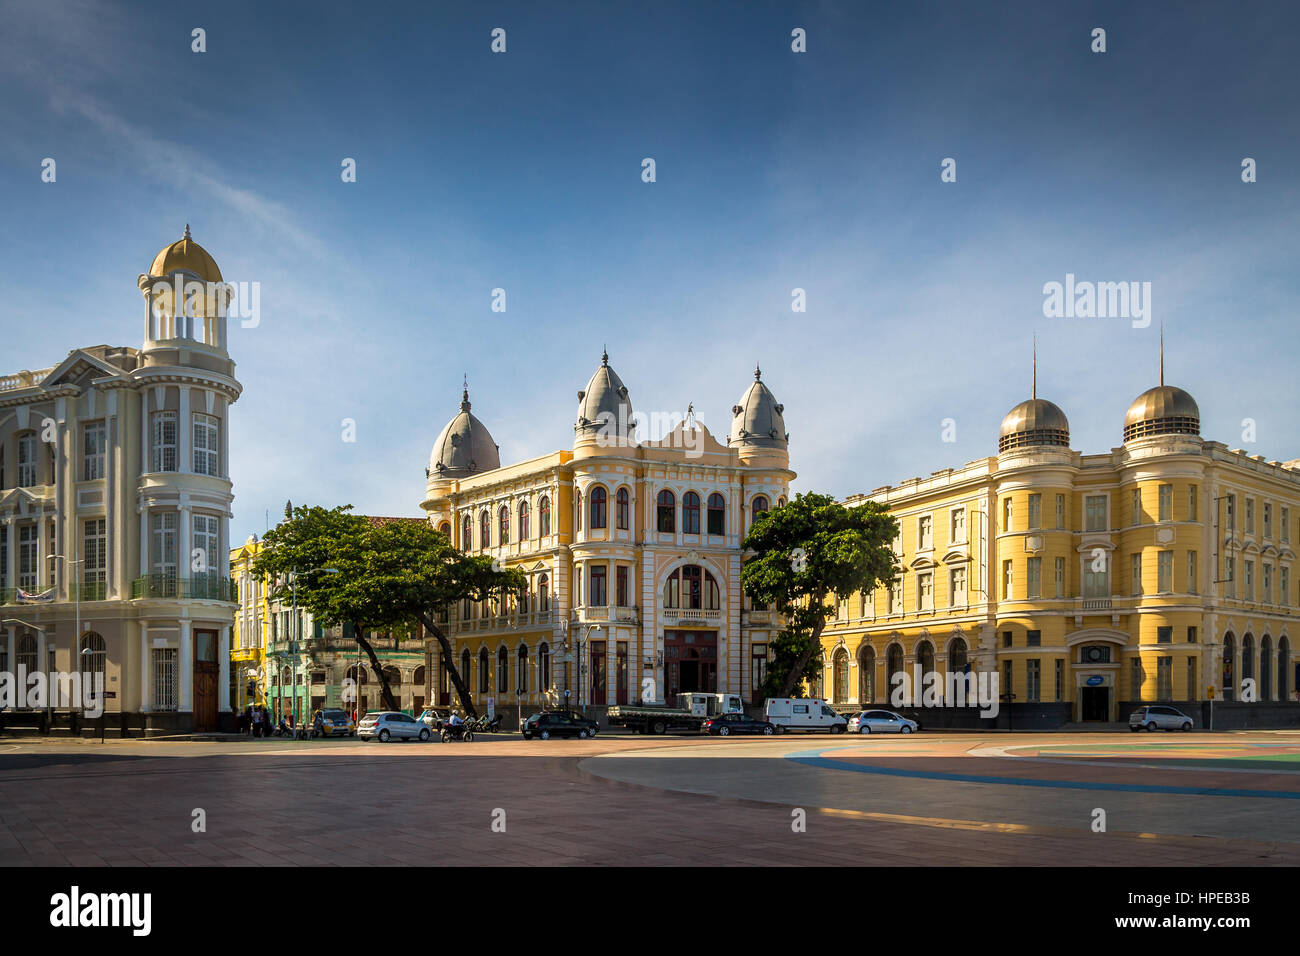 Historical Center of Recife City - Pernambuco, Brazil - Stock Image